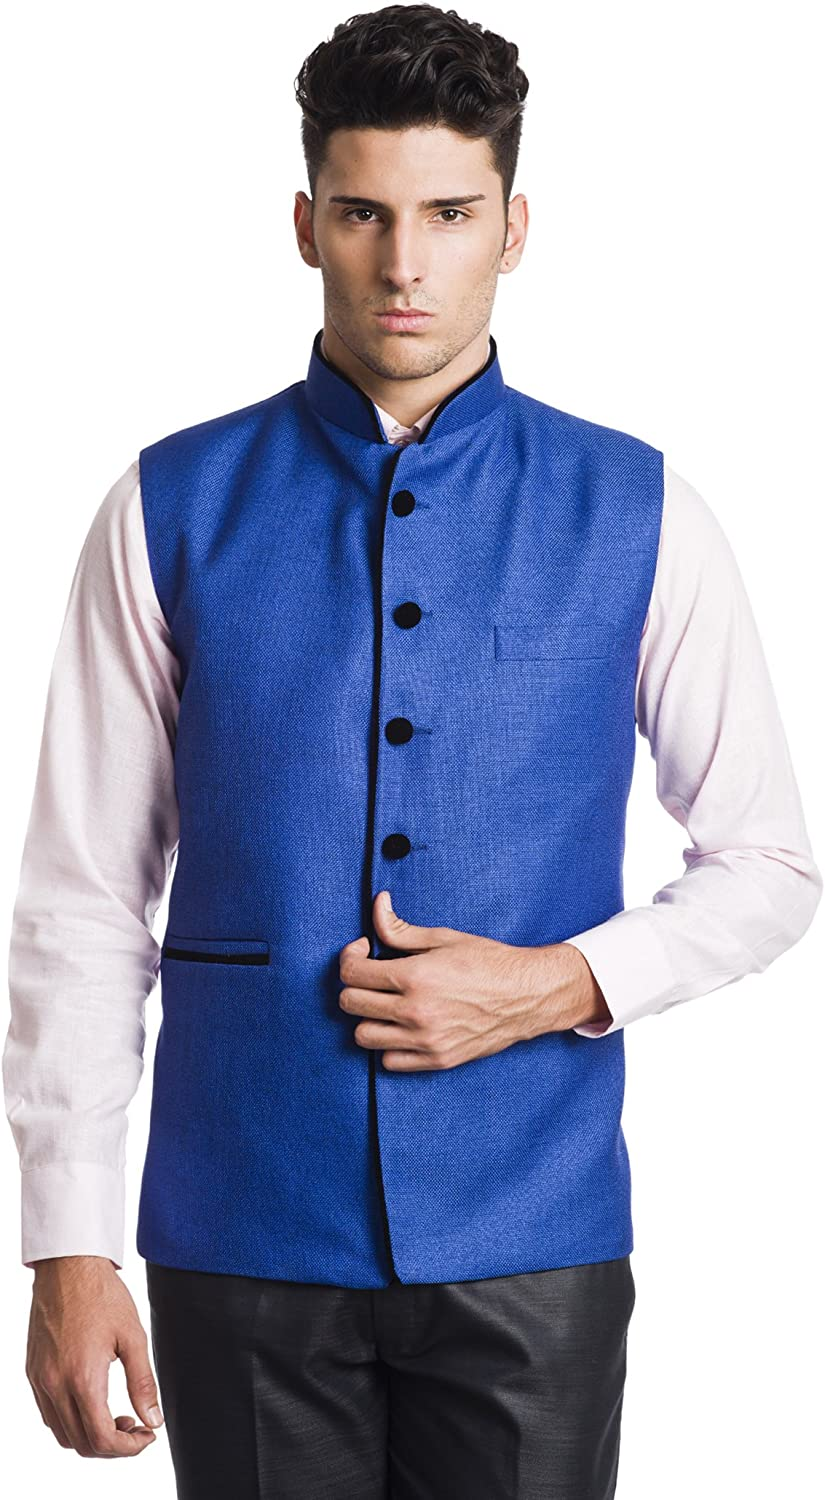 WINTAGE Men's Polyester Cotton Bandhgala Nehru Vest Waistcoat - Four Colors,